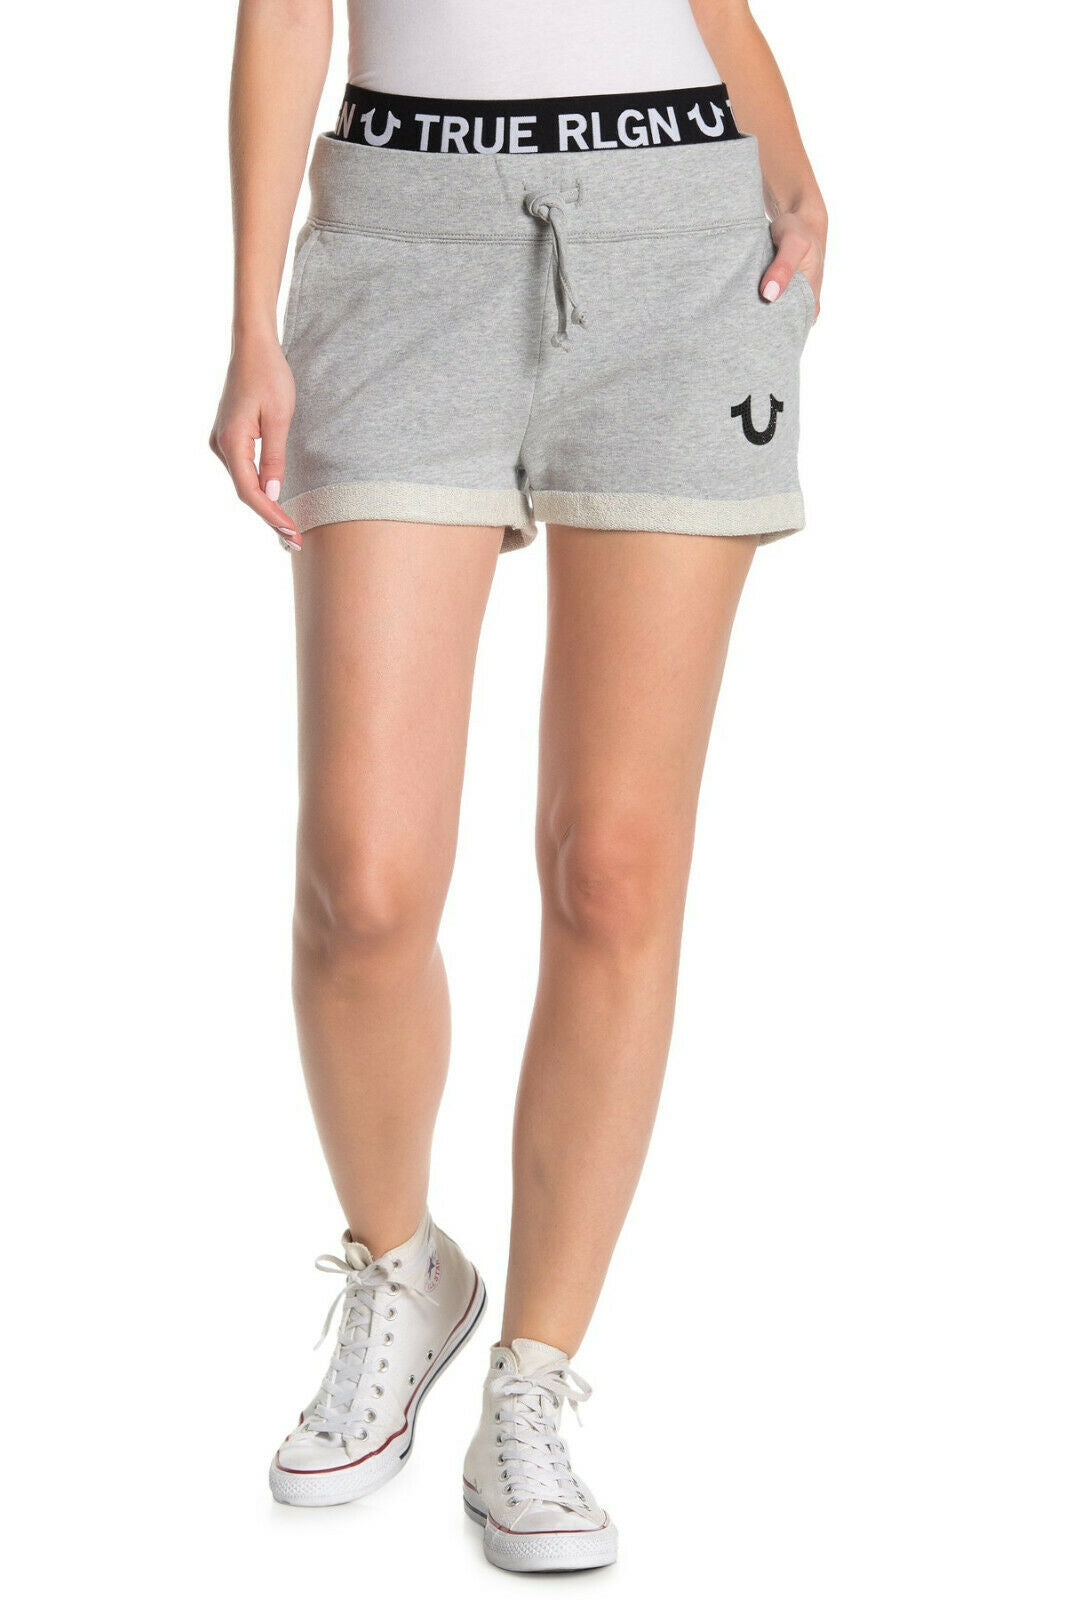 True Religion Women's Logo Trim Elastic Waist Activewear Sweat Shorts in Grey